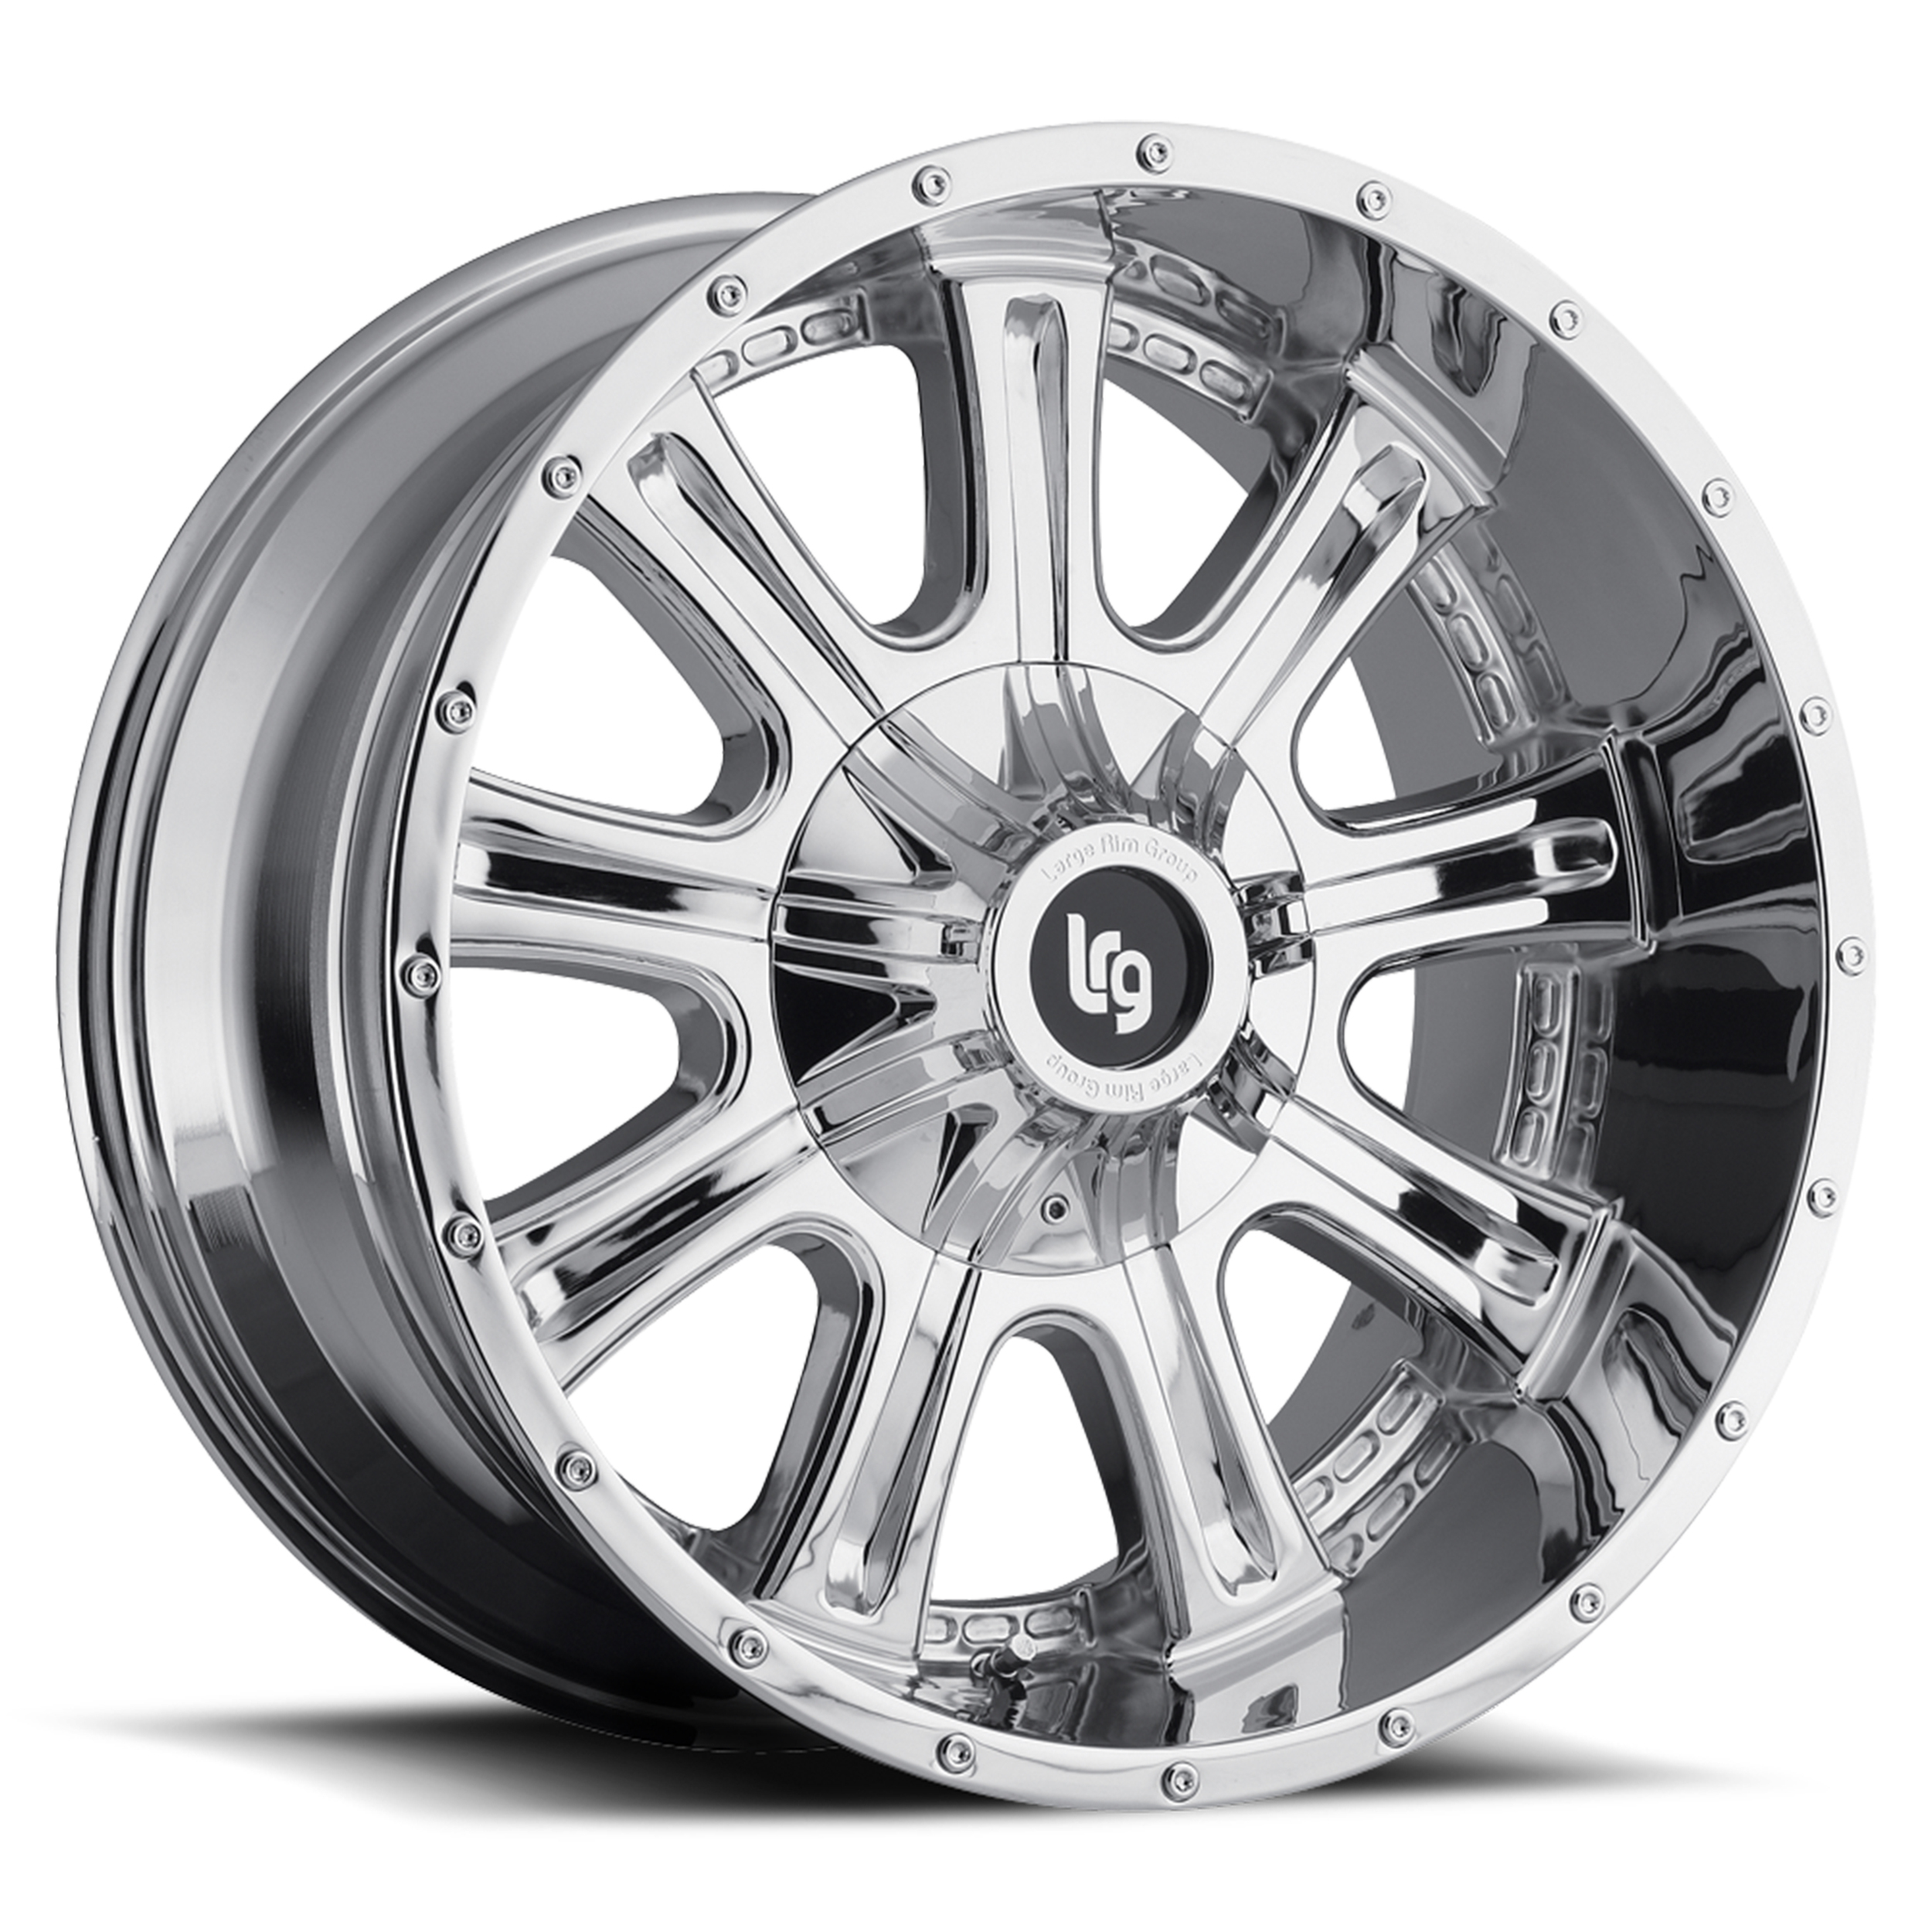 LRG Rims Series 105 Chrome Finish Wheels